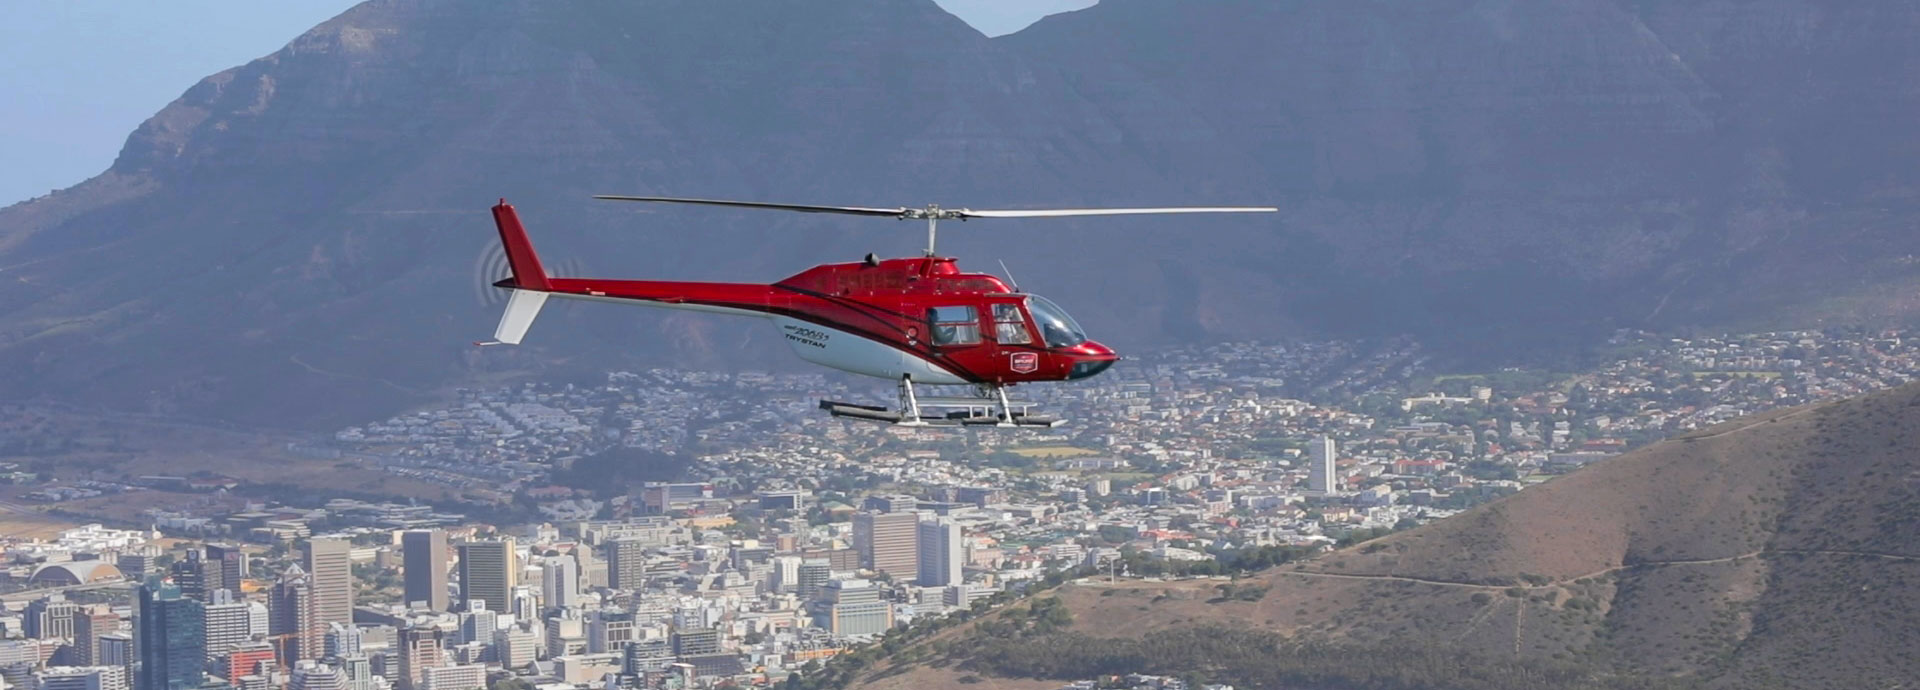 Waterfront Helicopter Tours Video Background